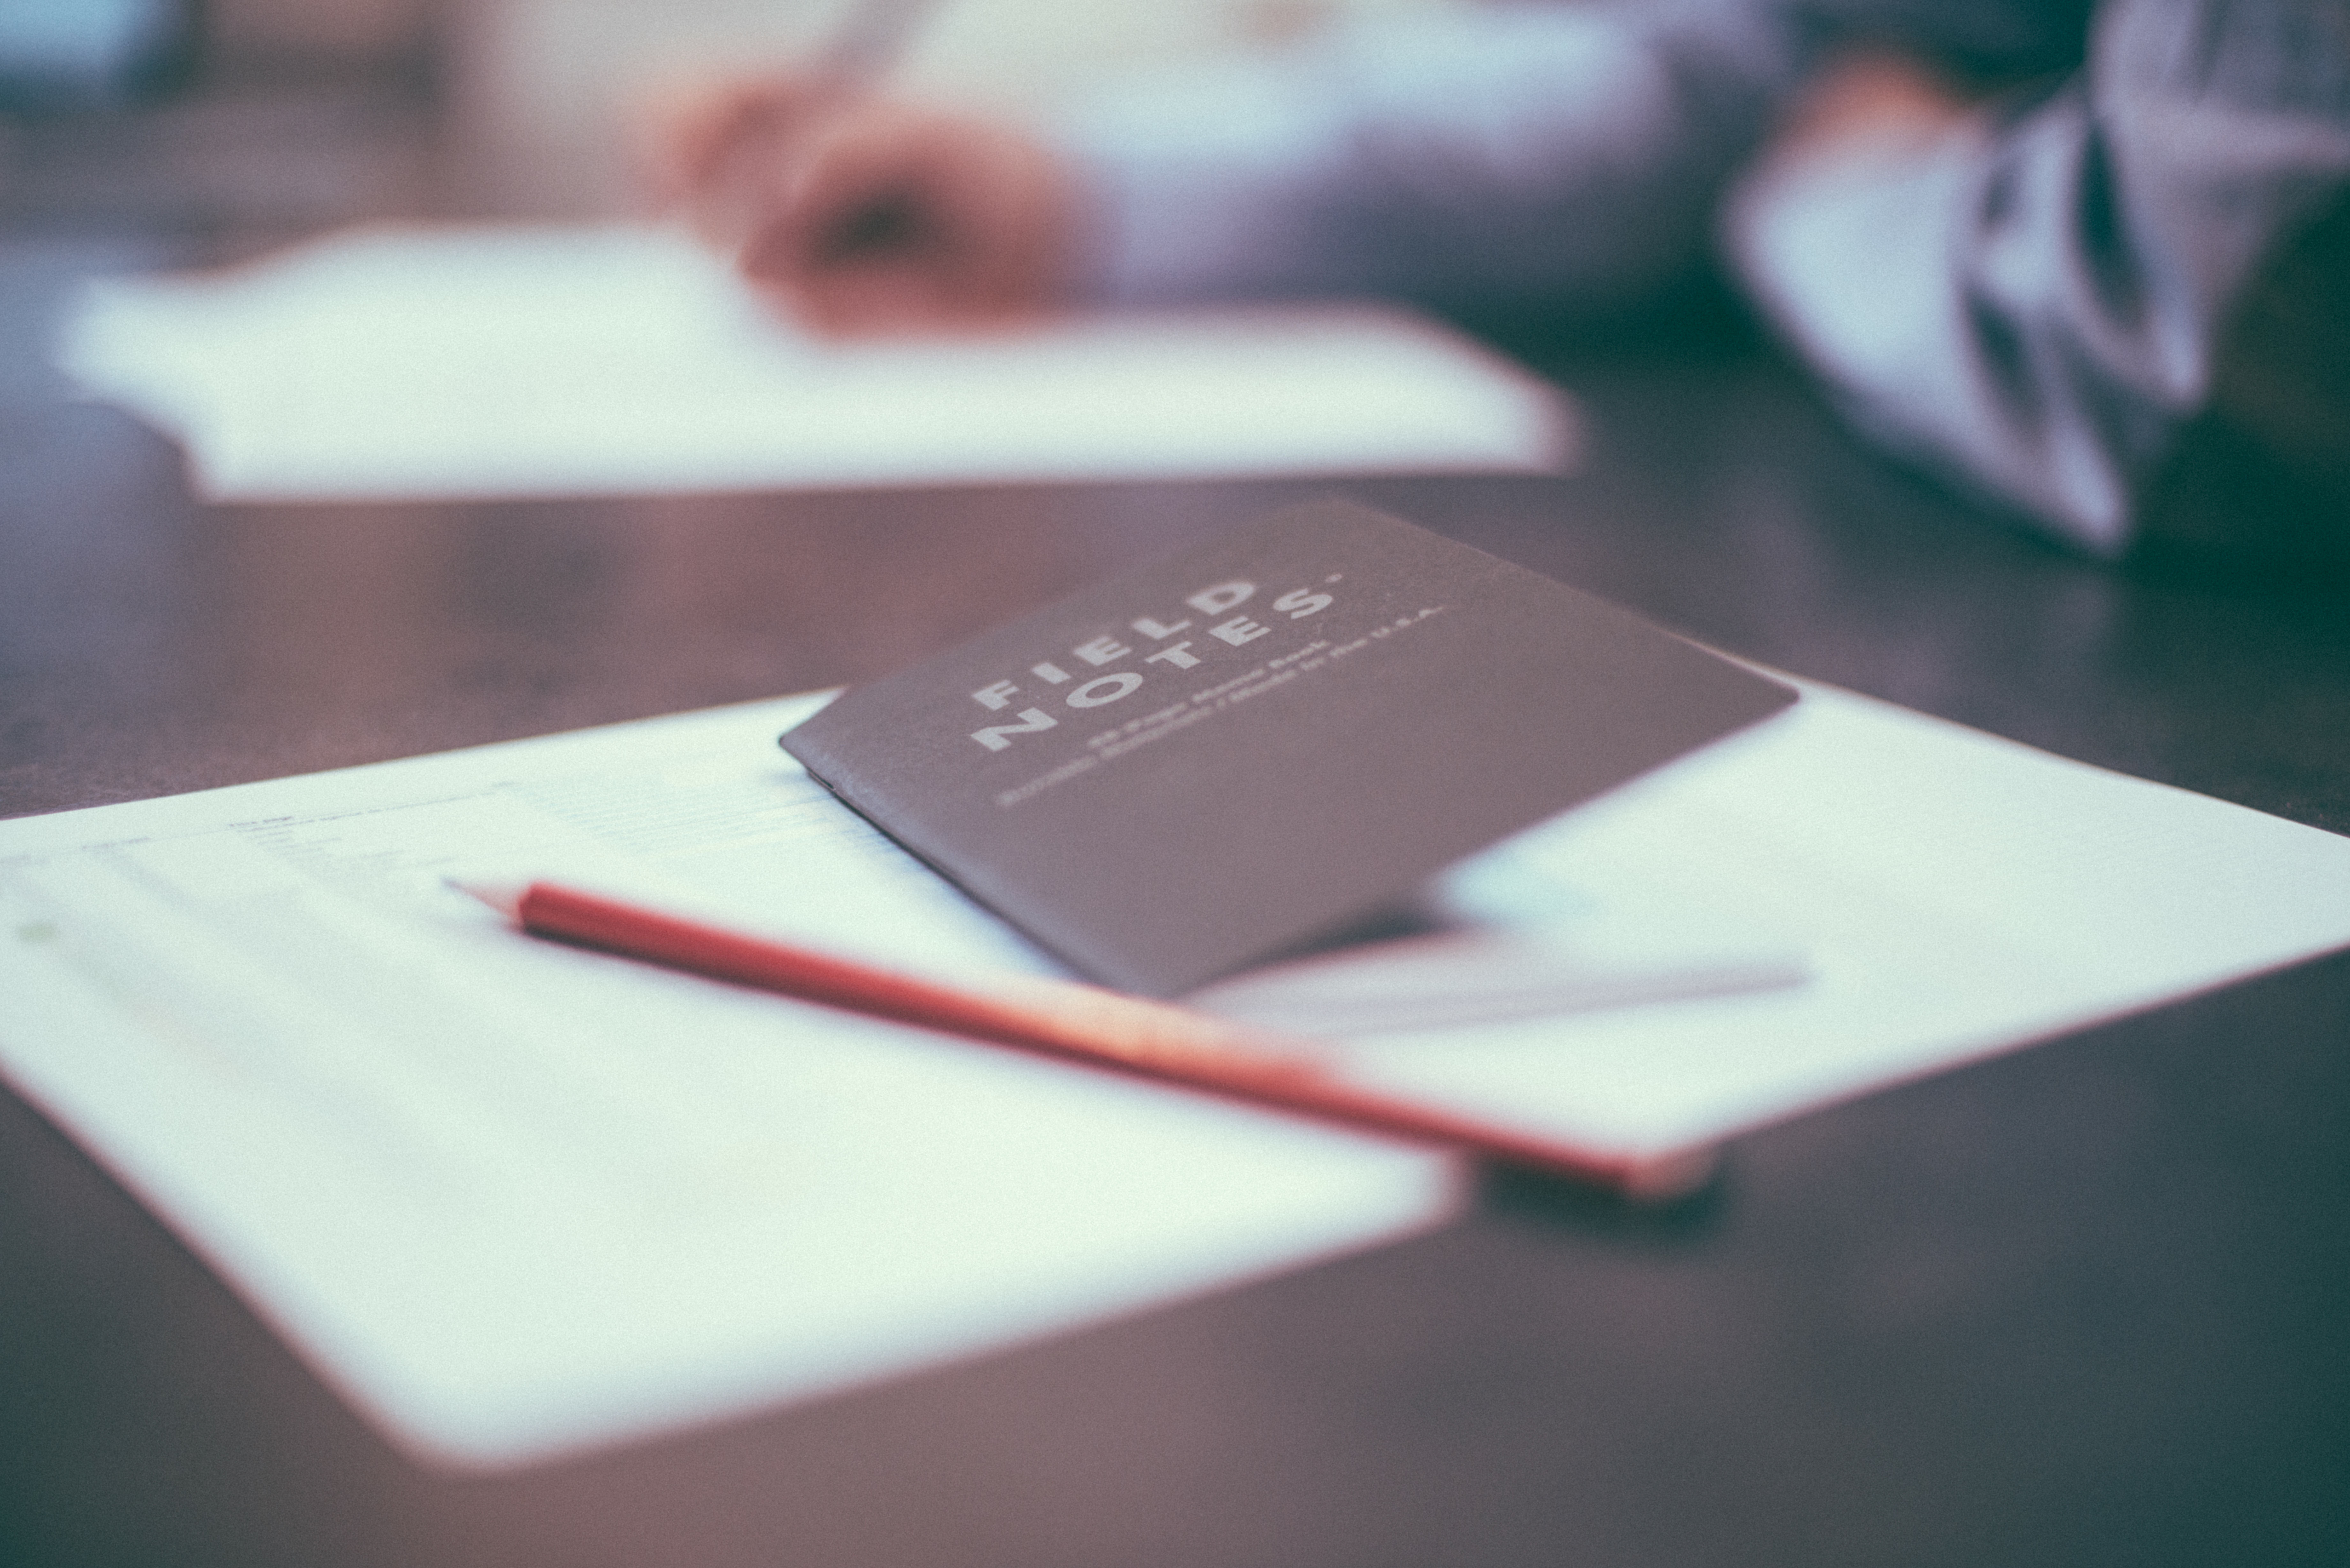 5 Simple Strategies for Taking Better Notes at Work Focus